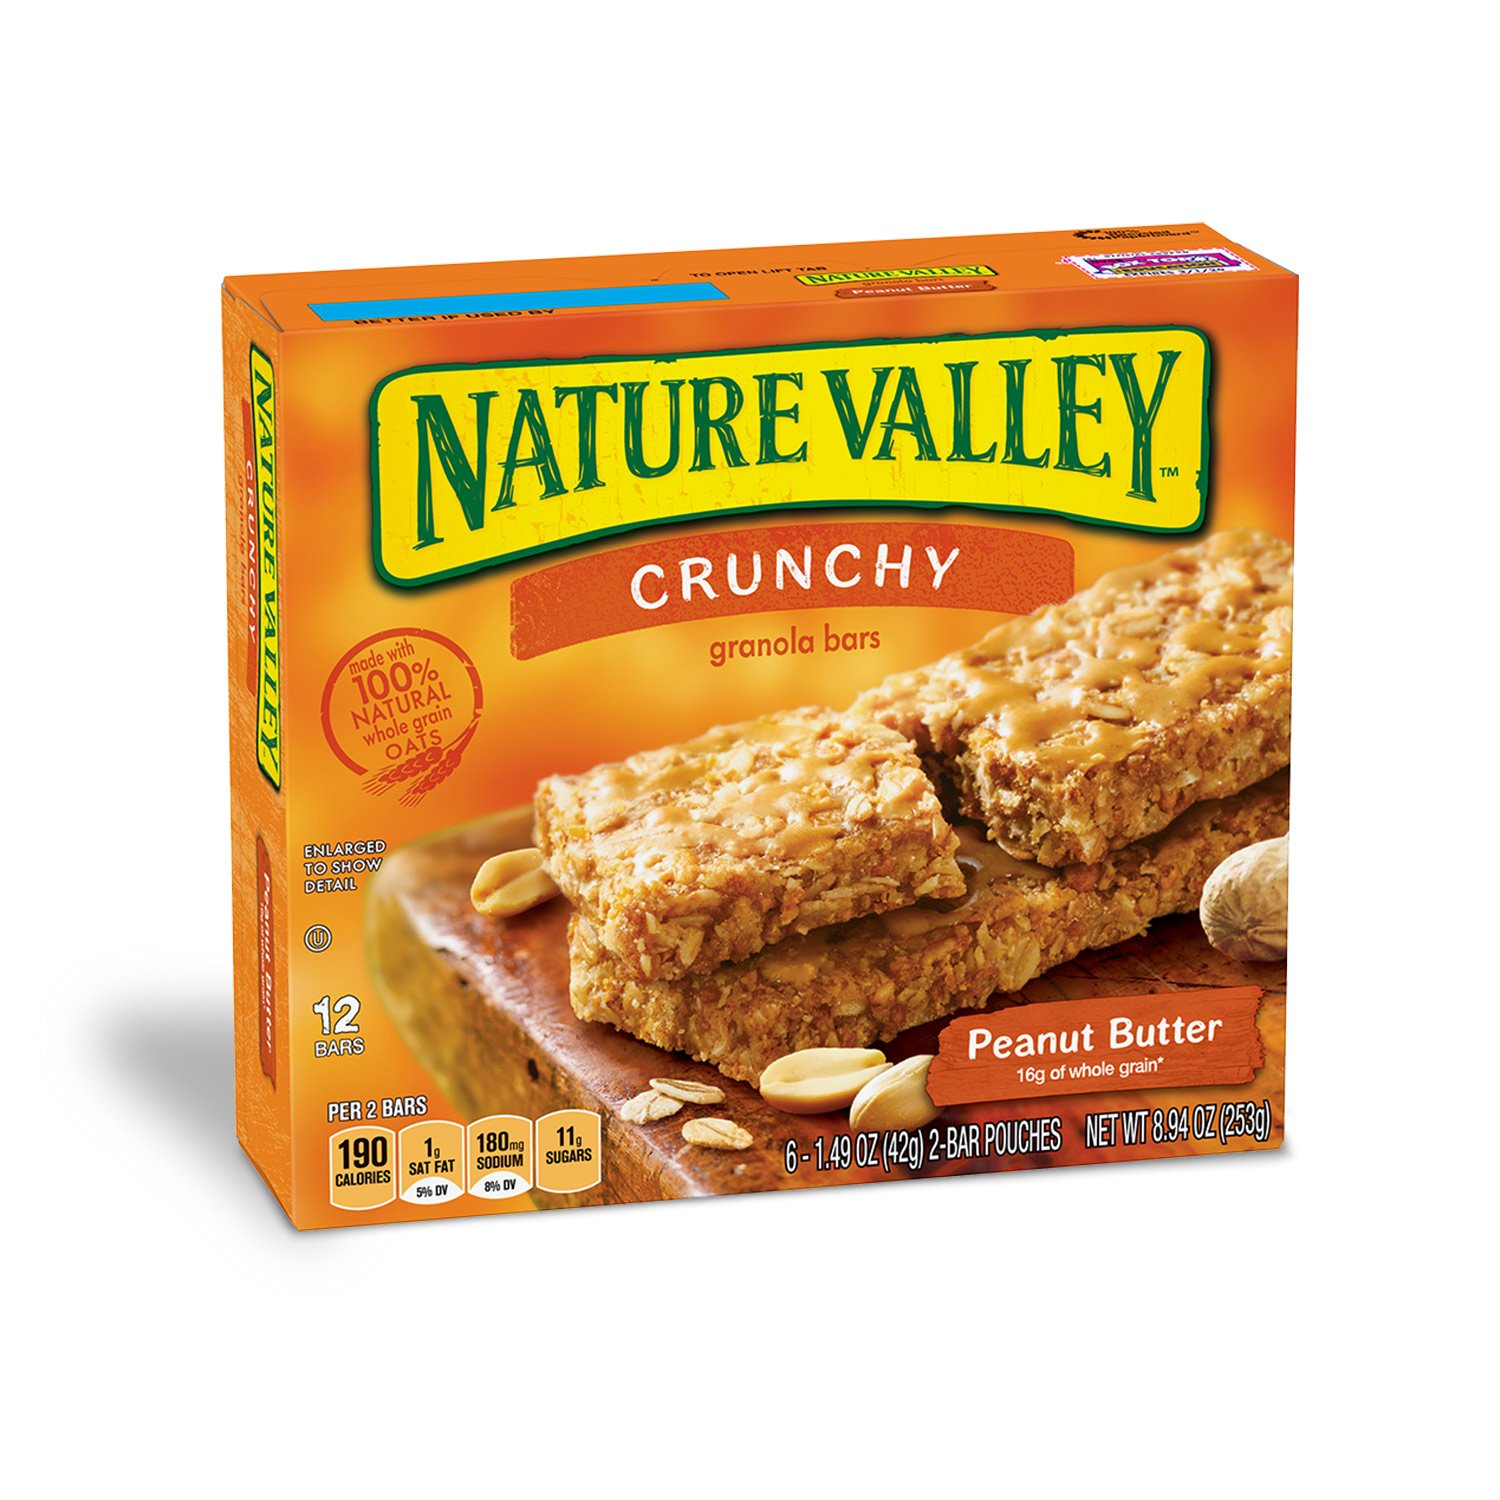 Nature Valley Granola Bars, Crunchy, Peanut Butter, 6 Pouches - 1.49 oz, 2-Bars Per Pouch (Pack of 6) by Nature Valley